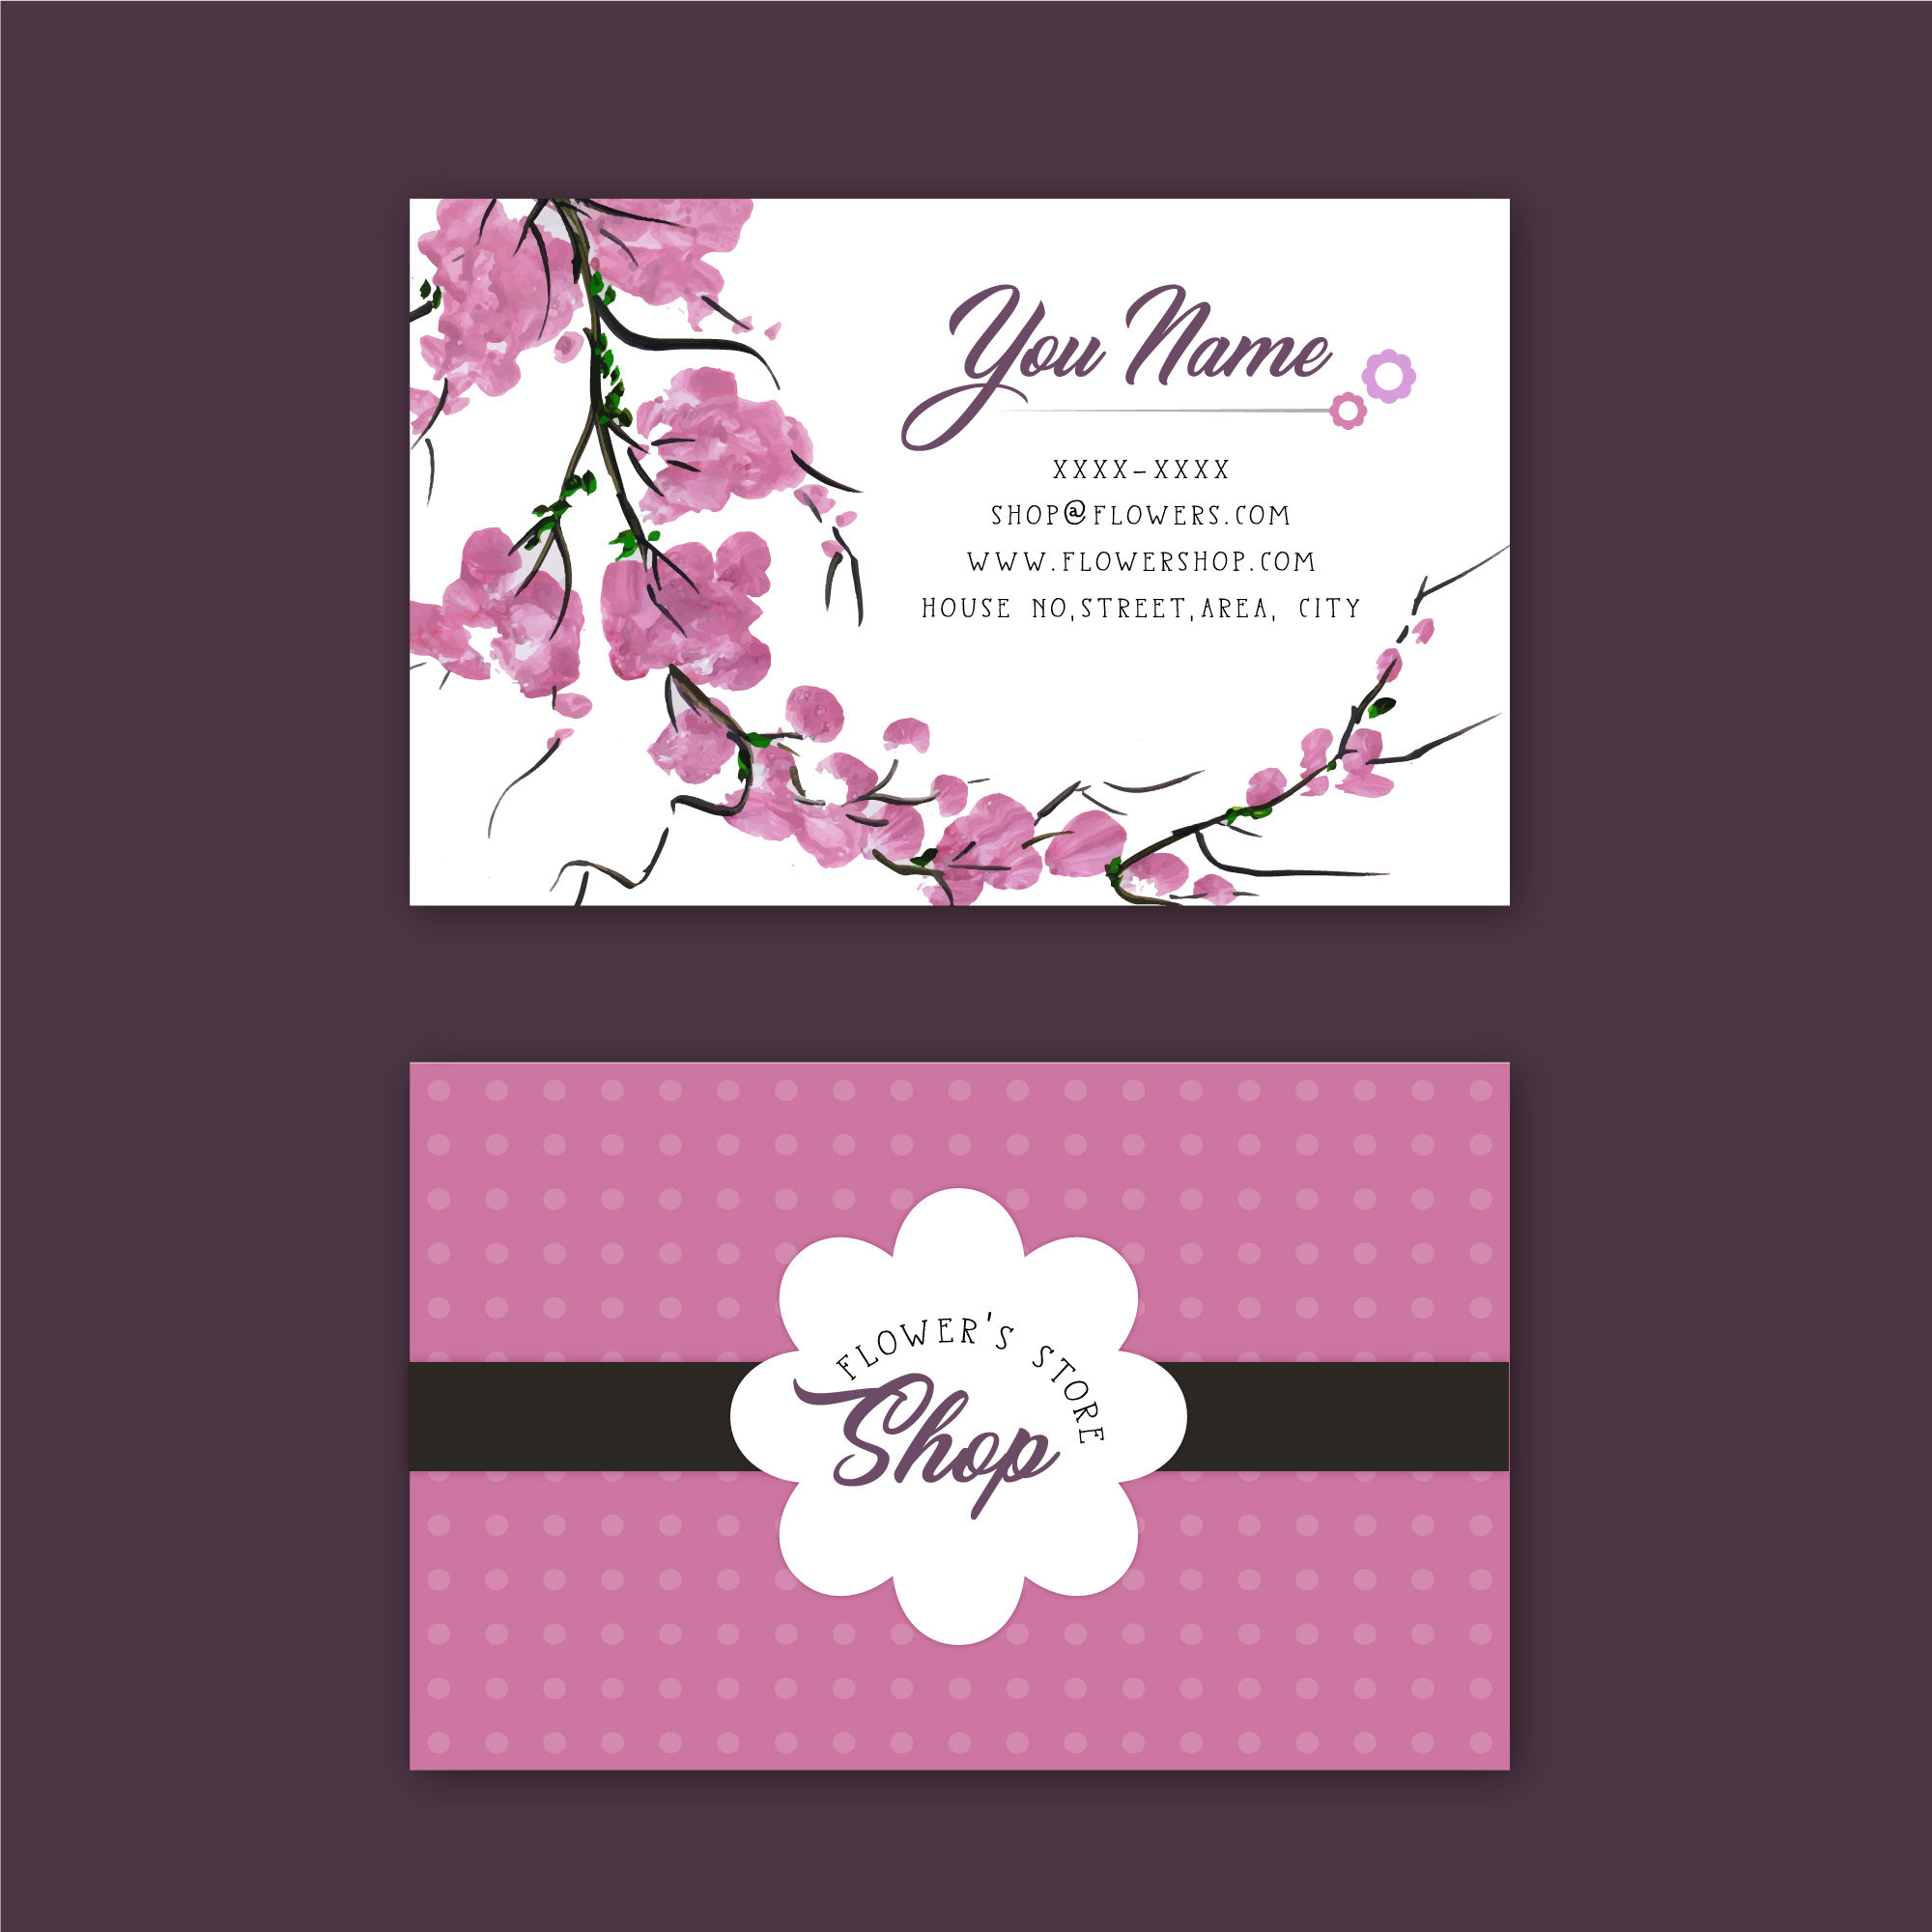 Pink flower's store business card